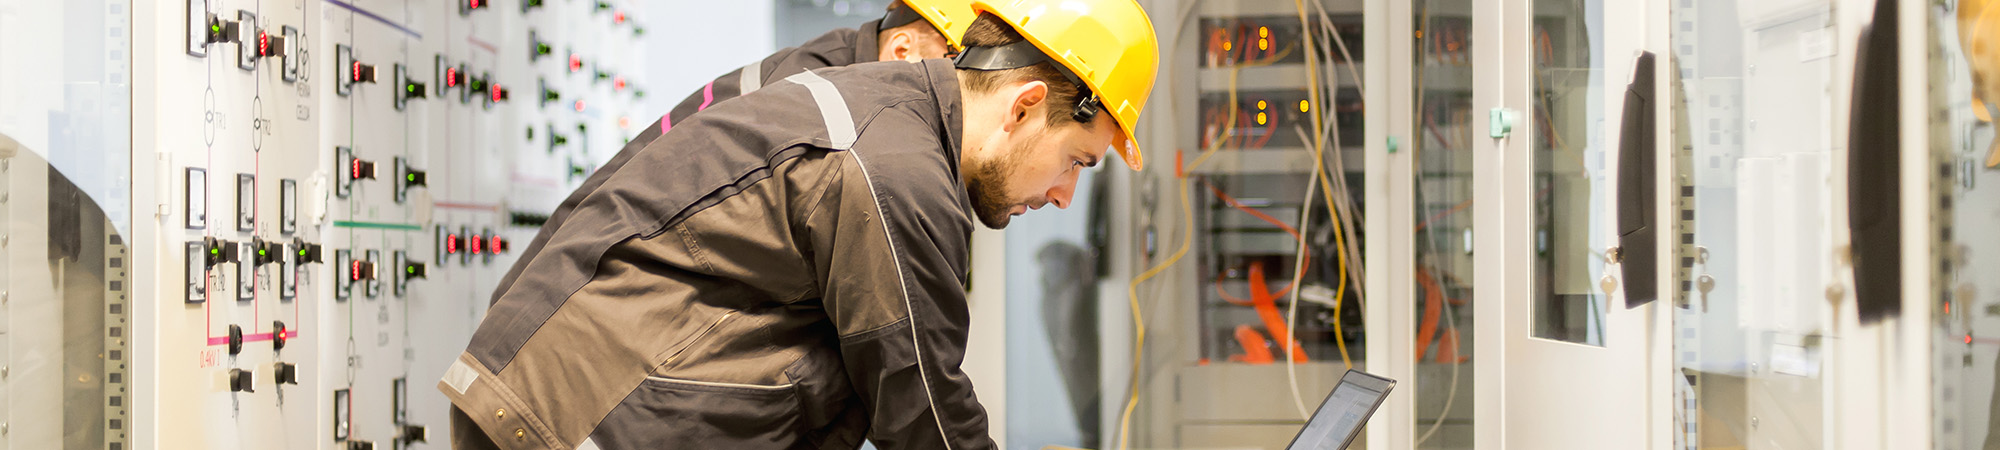 Electrical Contractor Recruitment